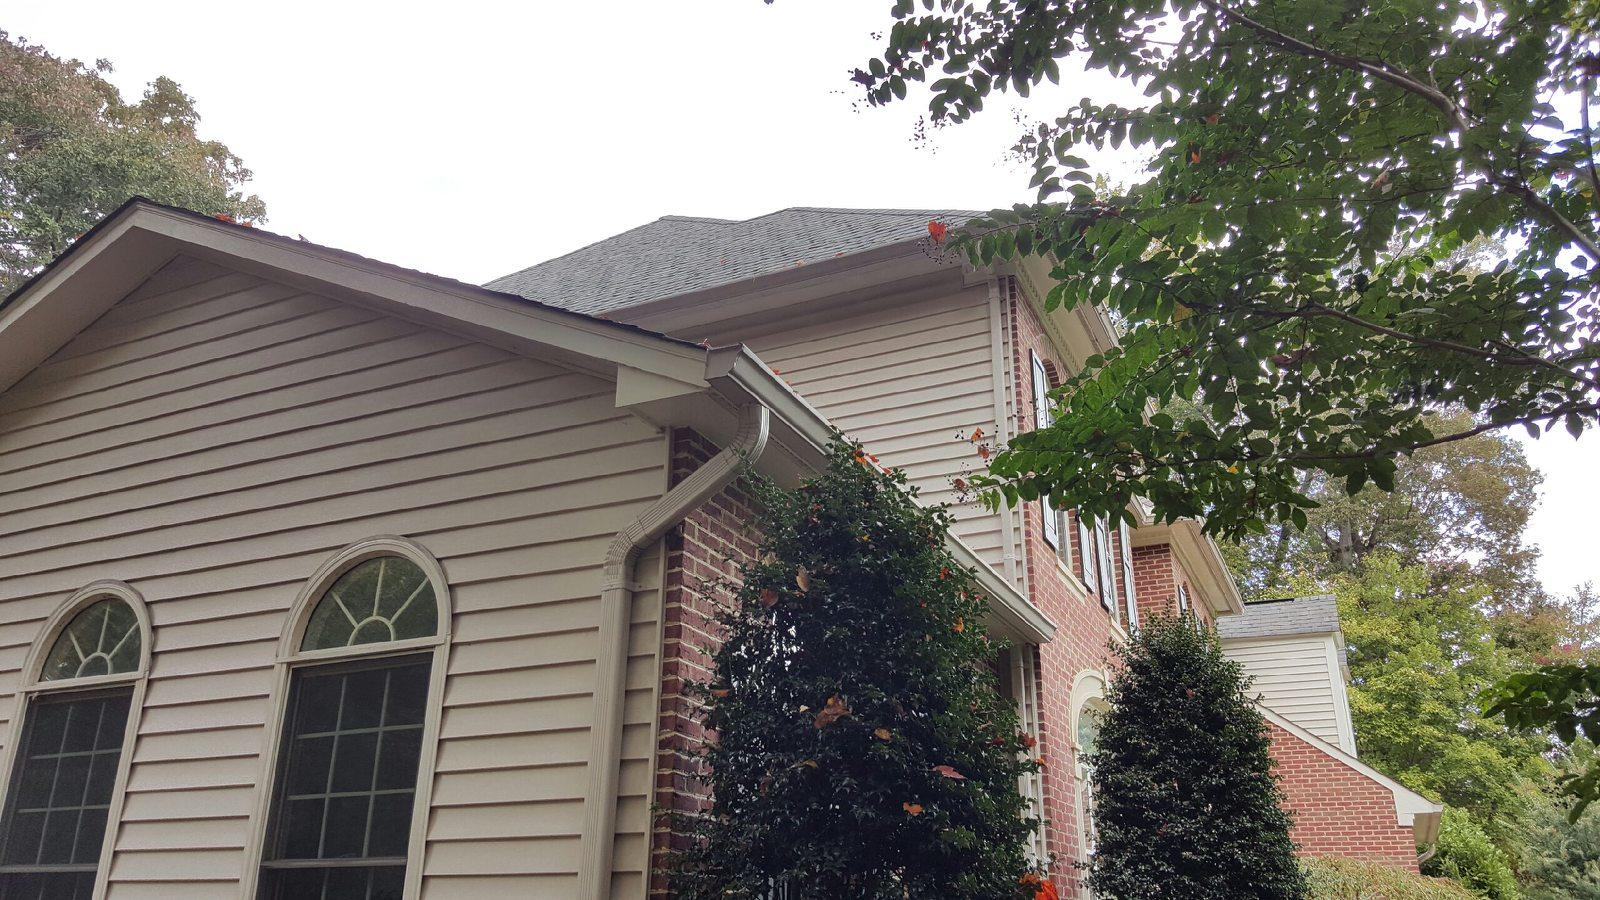 The Finished Bethesda Gutter Guard Installation